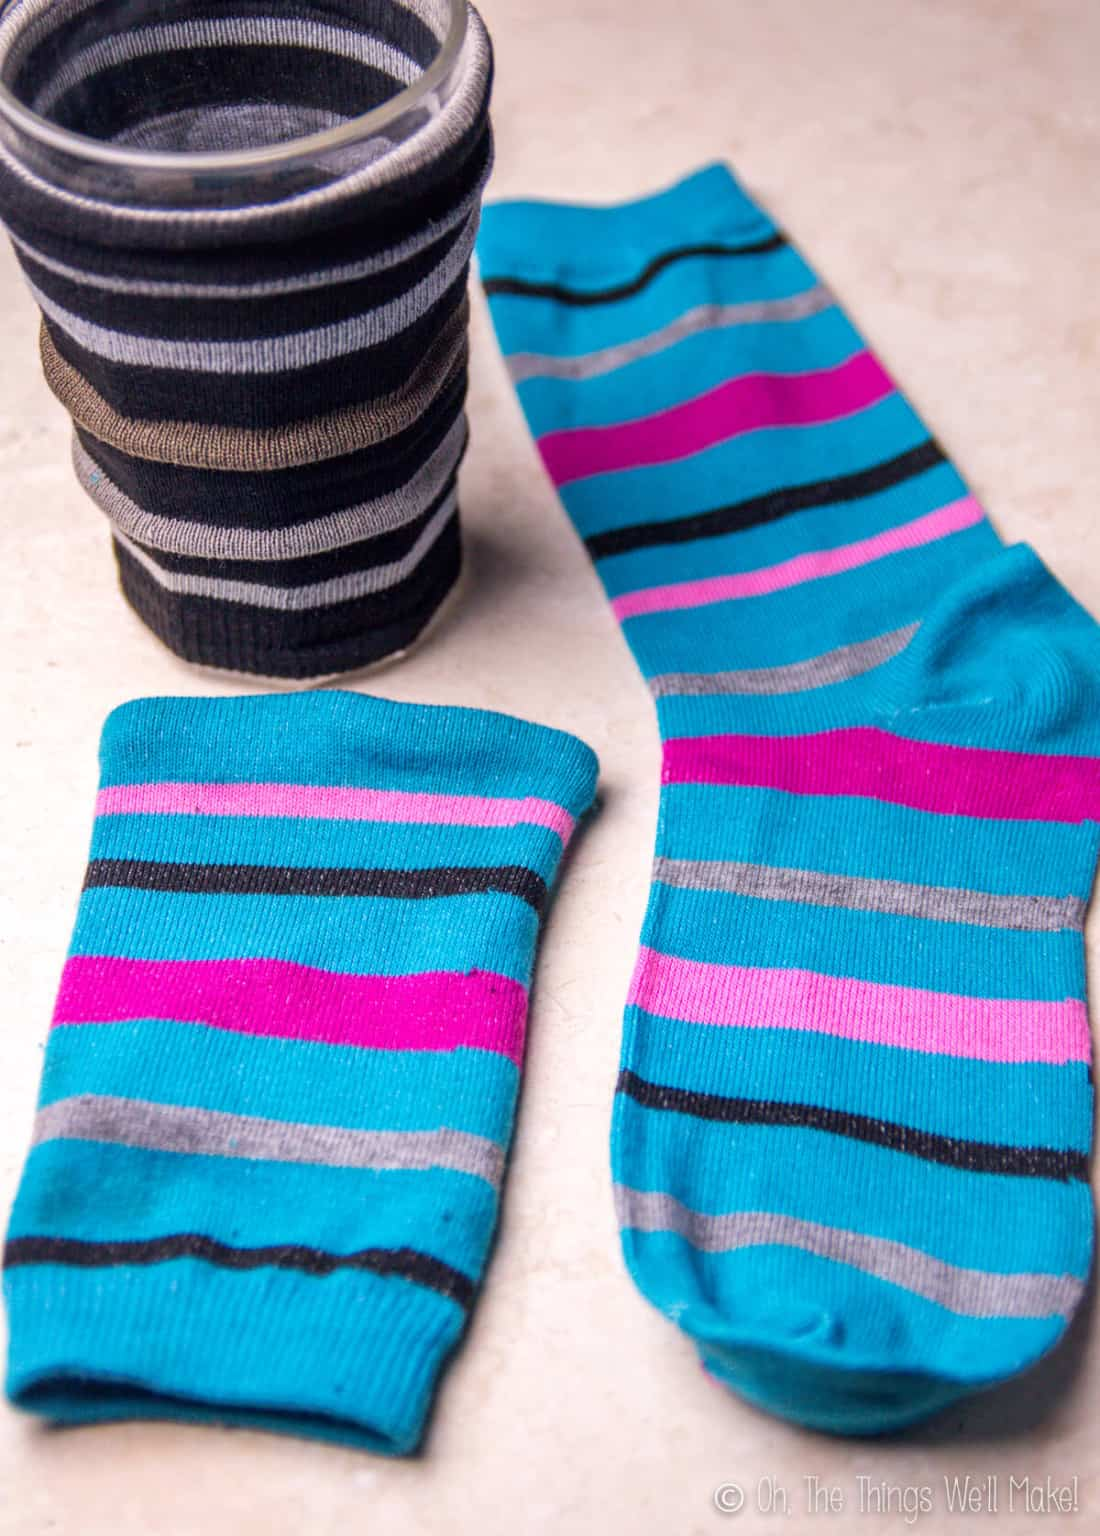 The finished black striped coffee cozy slipped over a glass with a finished blue striped coffee cozy laid down next to a striped blue sock.